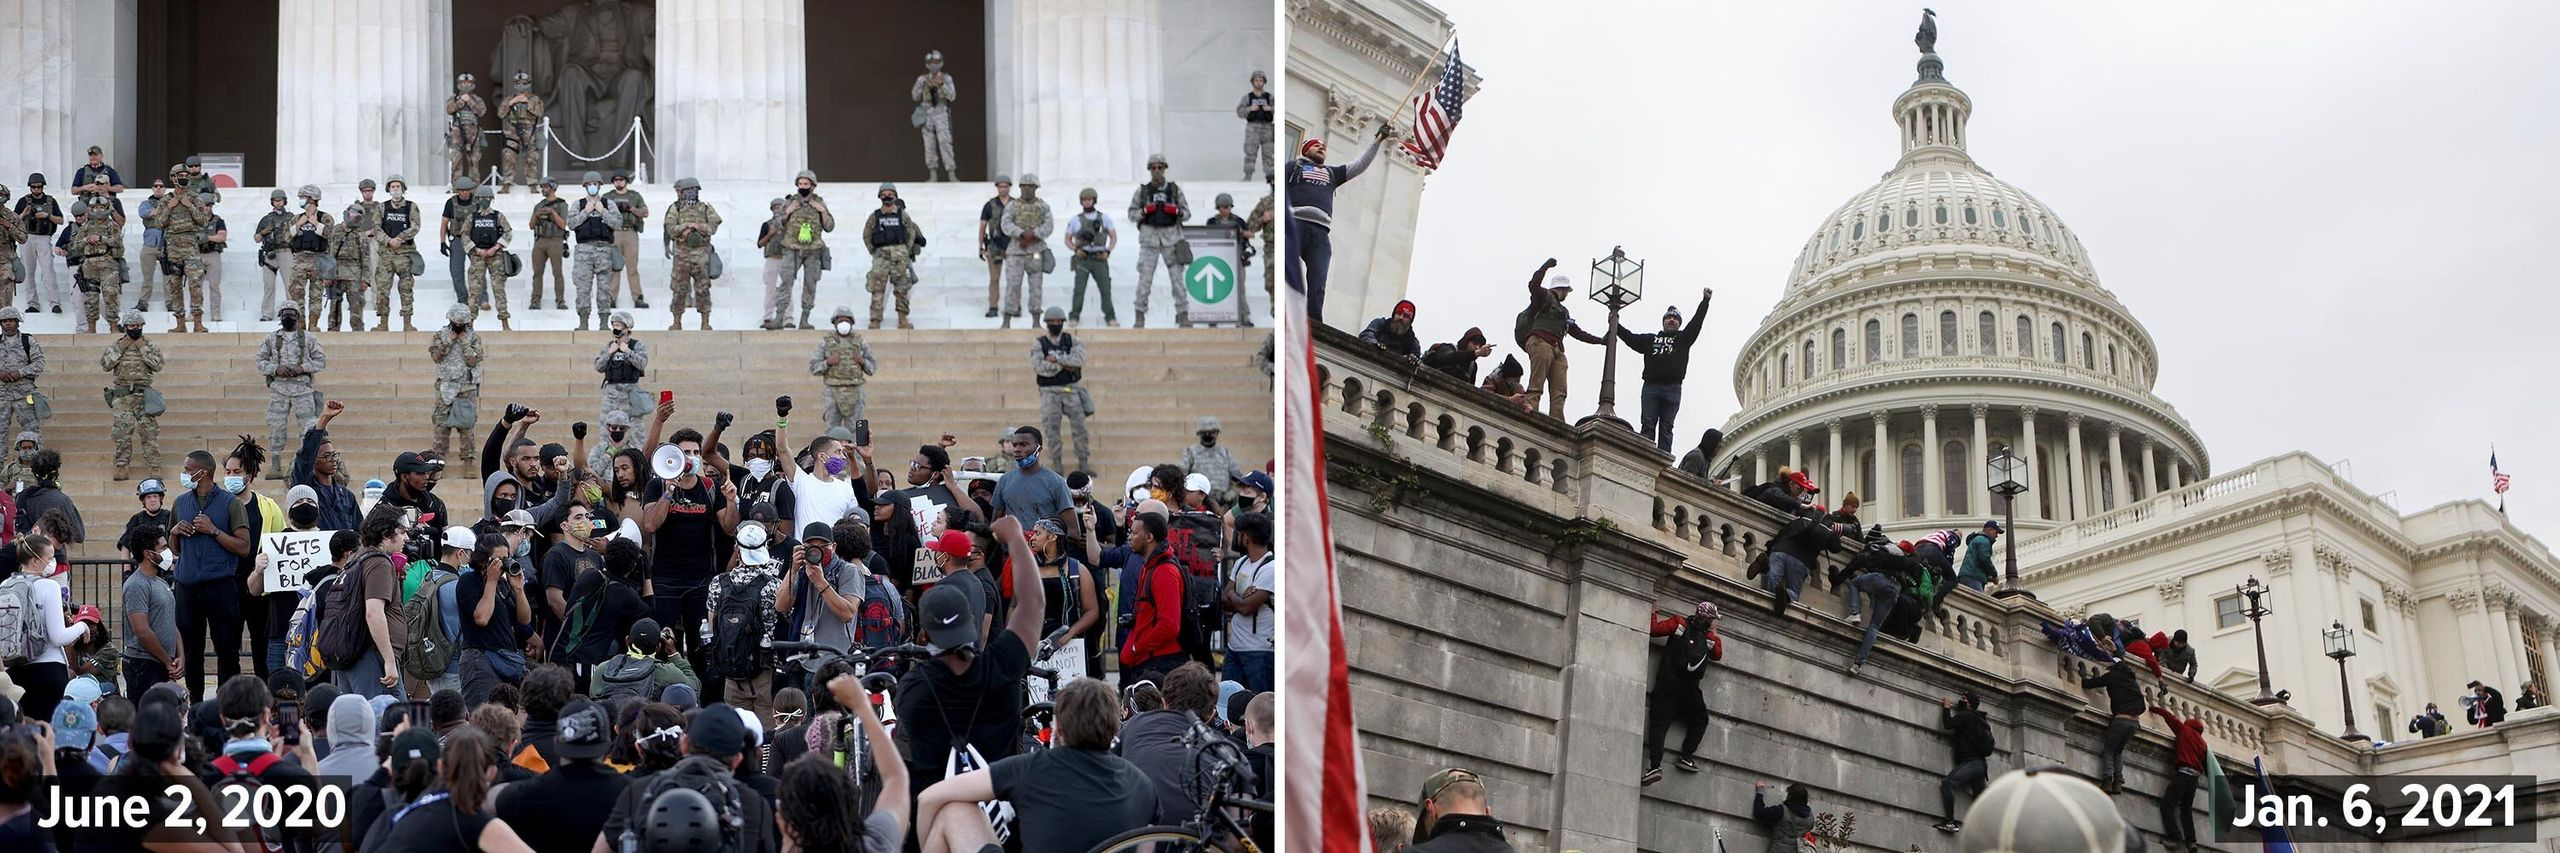 Left: Members of the D.C. National Guard stand on the steps of the Lincoln Memorial monitoring demonstrators during a peacefu